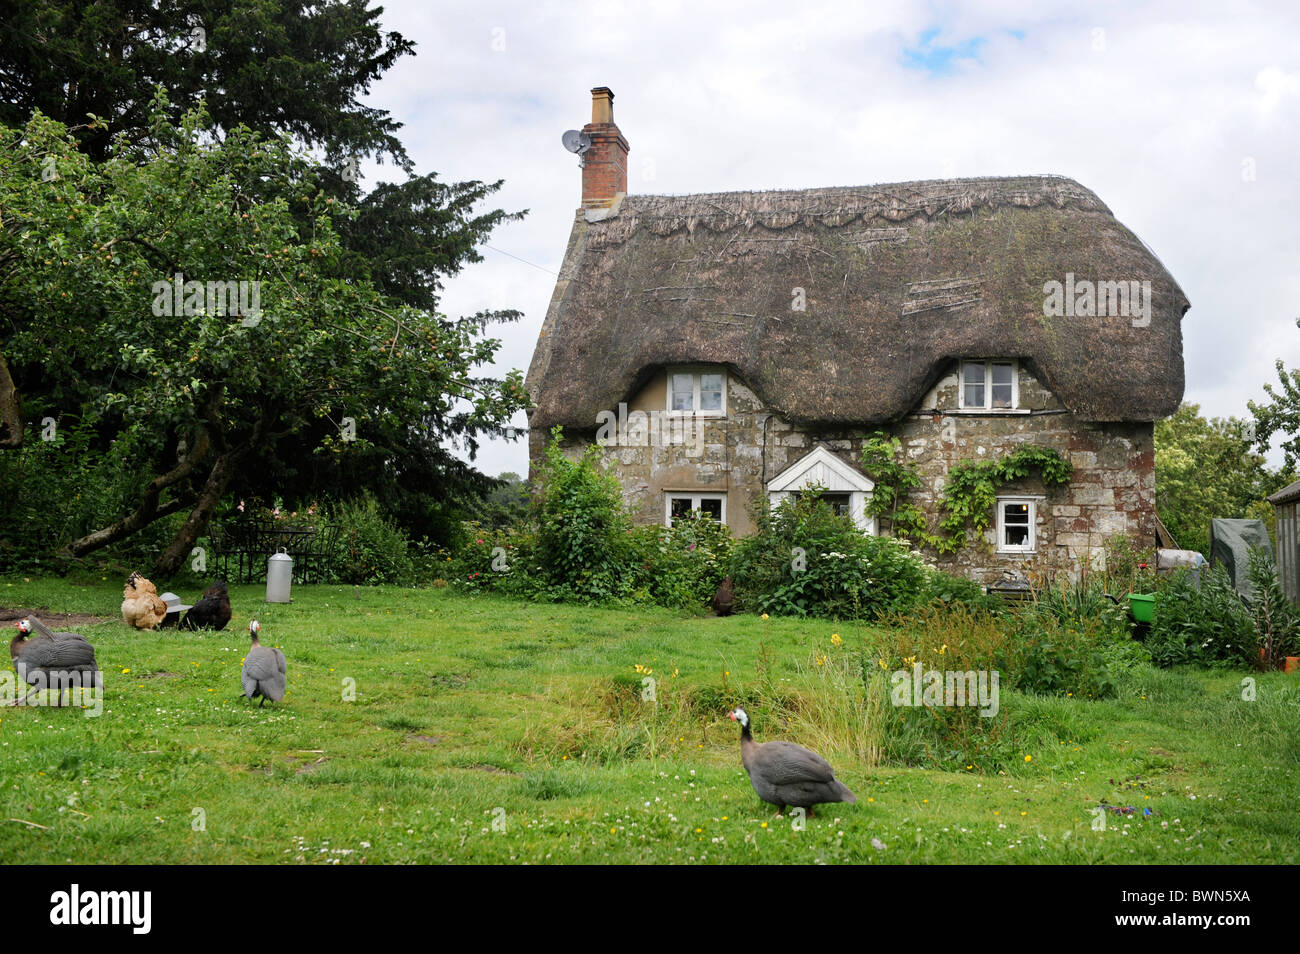 A thatched cottage with chickens in the garden Wiltshire, UK - Stock Image